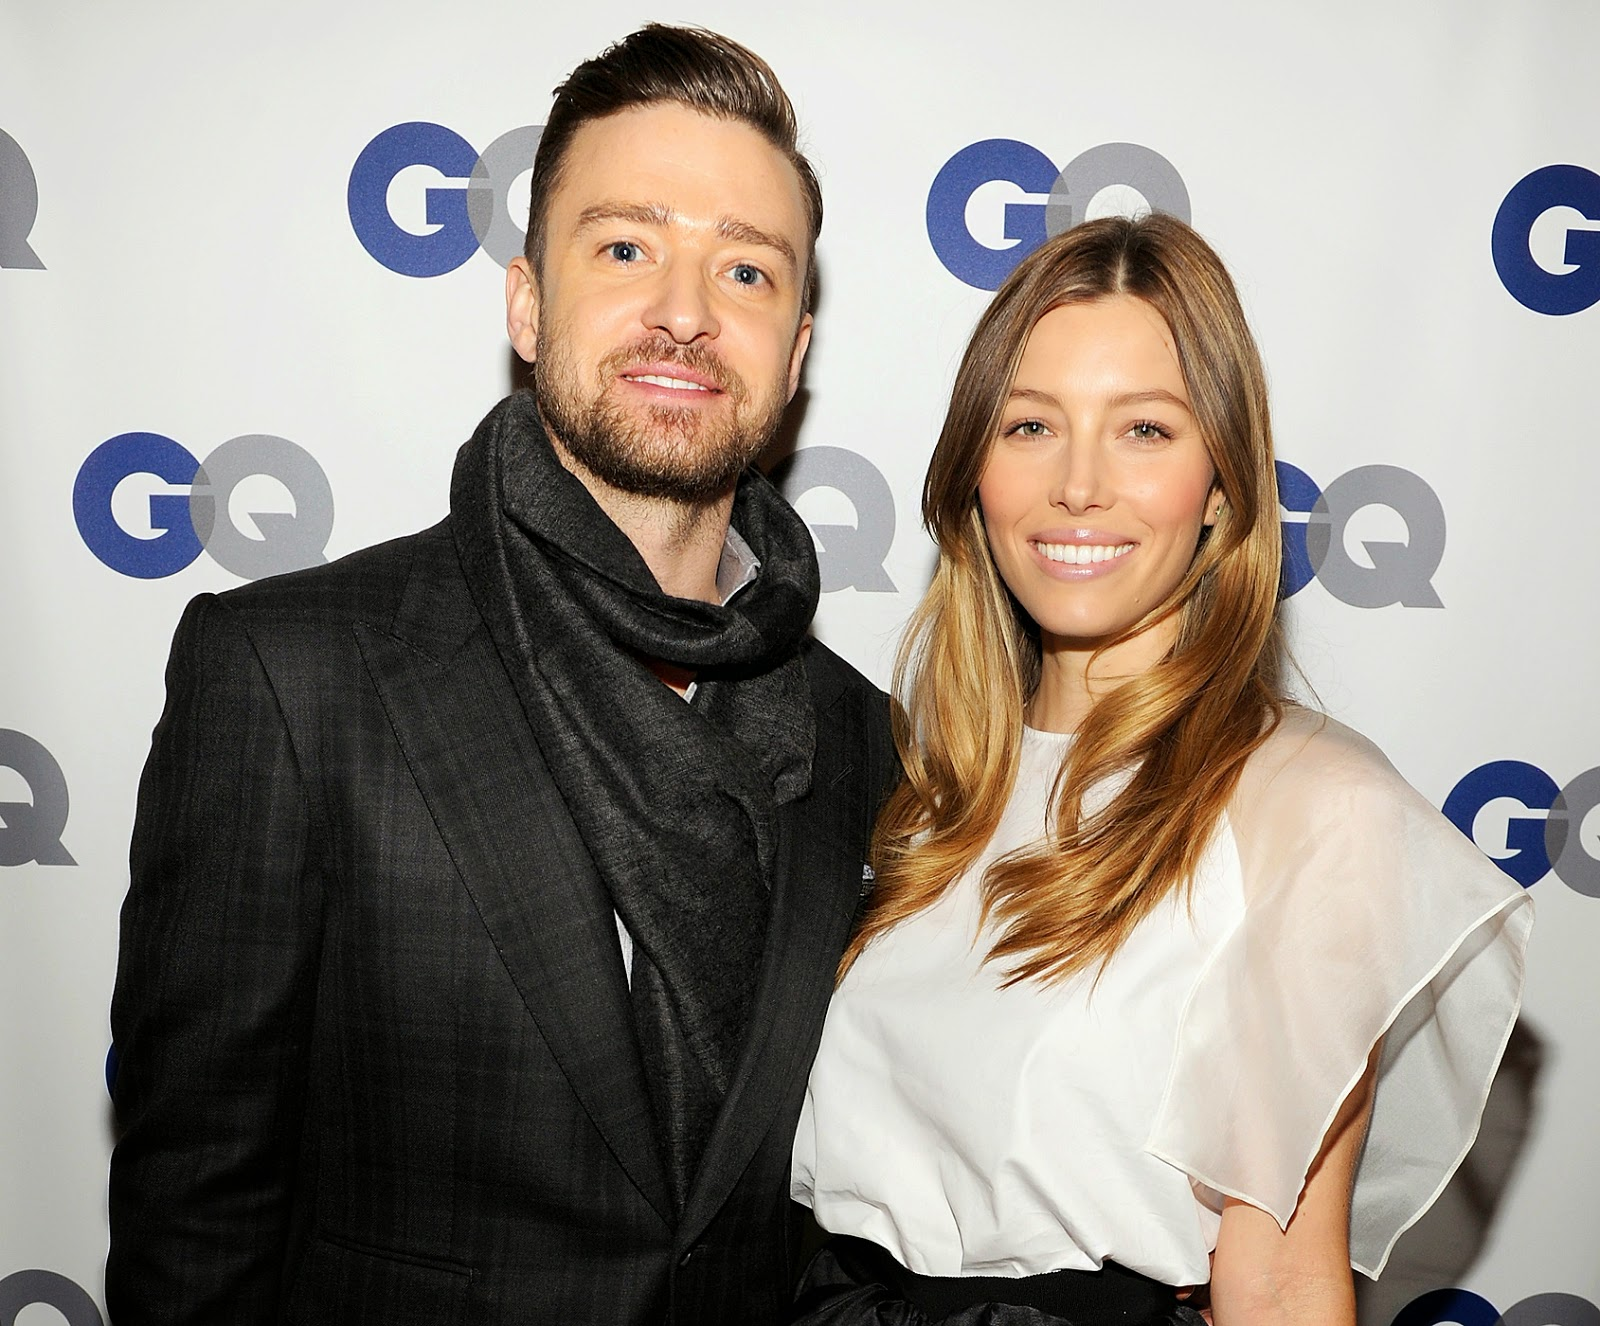 Justin Timberlake becomes a Dad